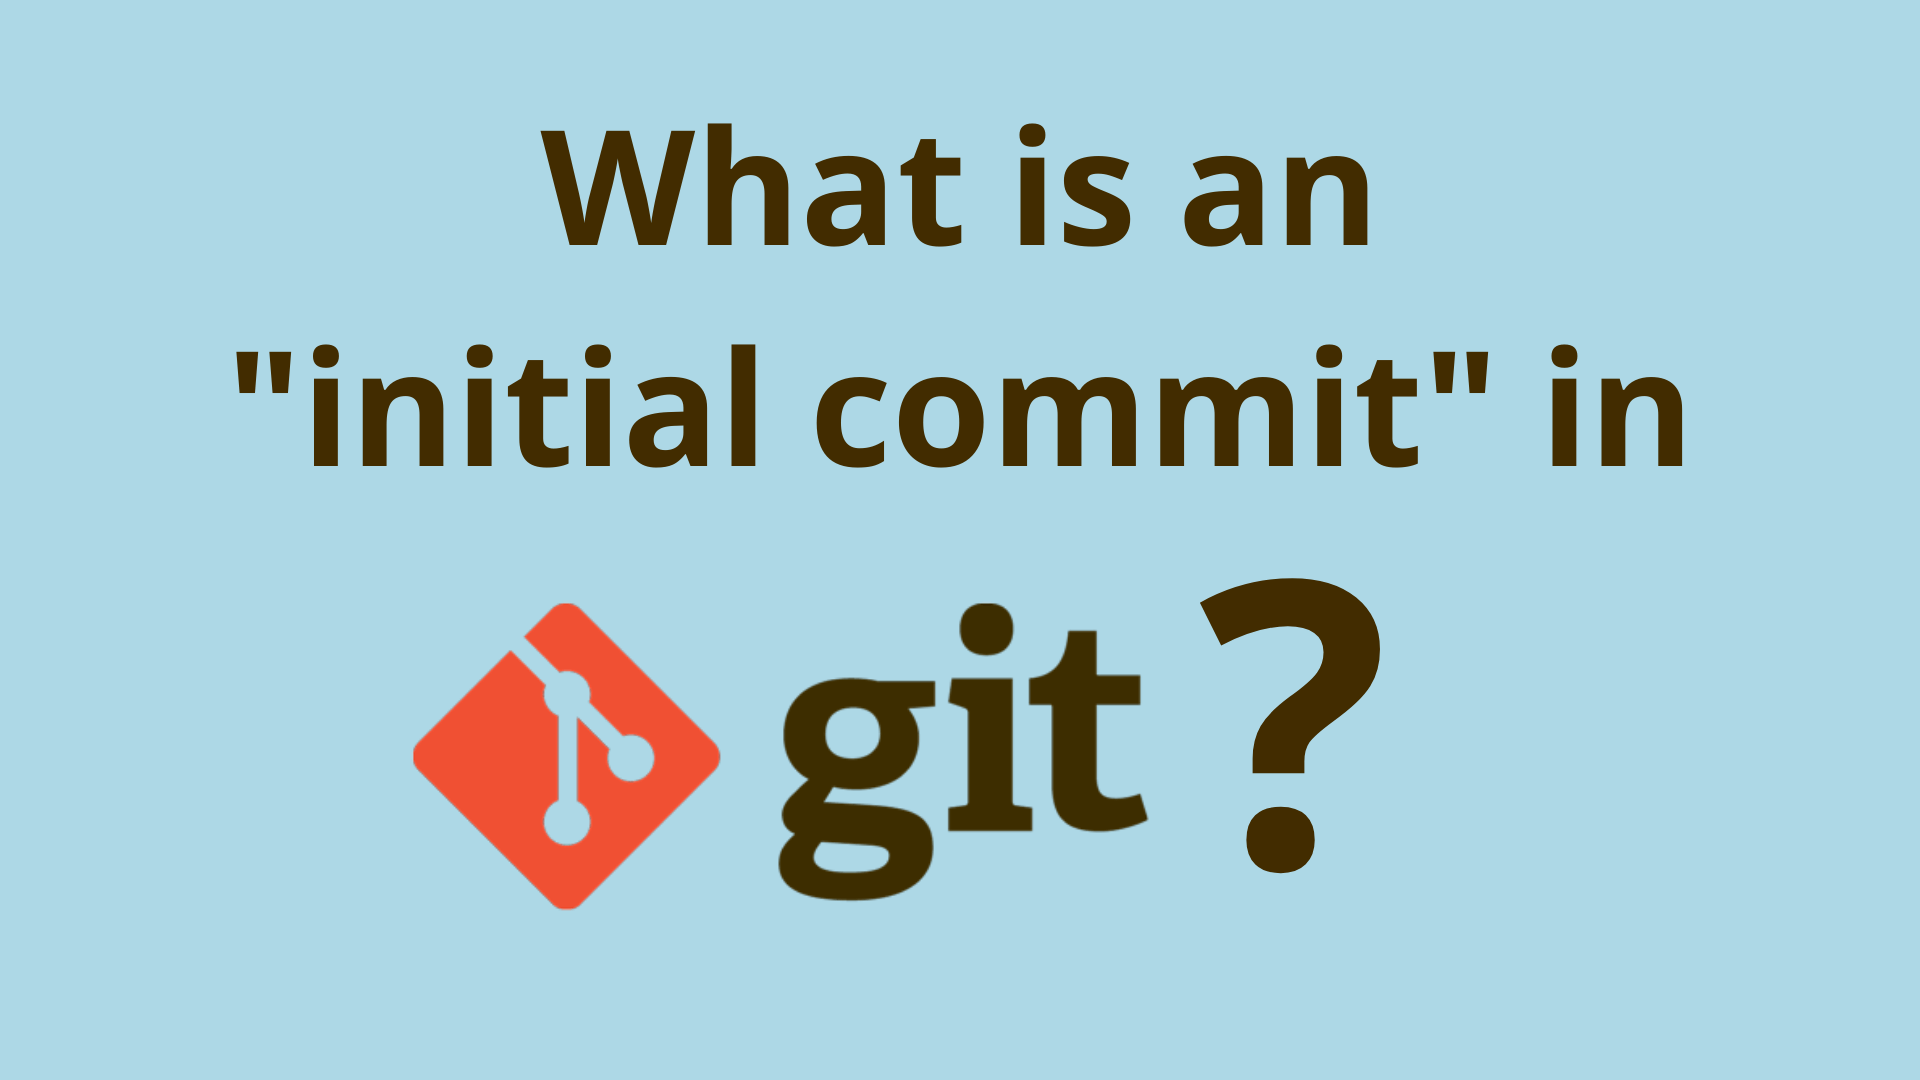 Image of What is an initial commit in Git?